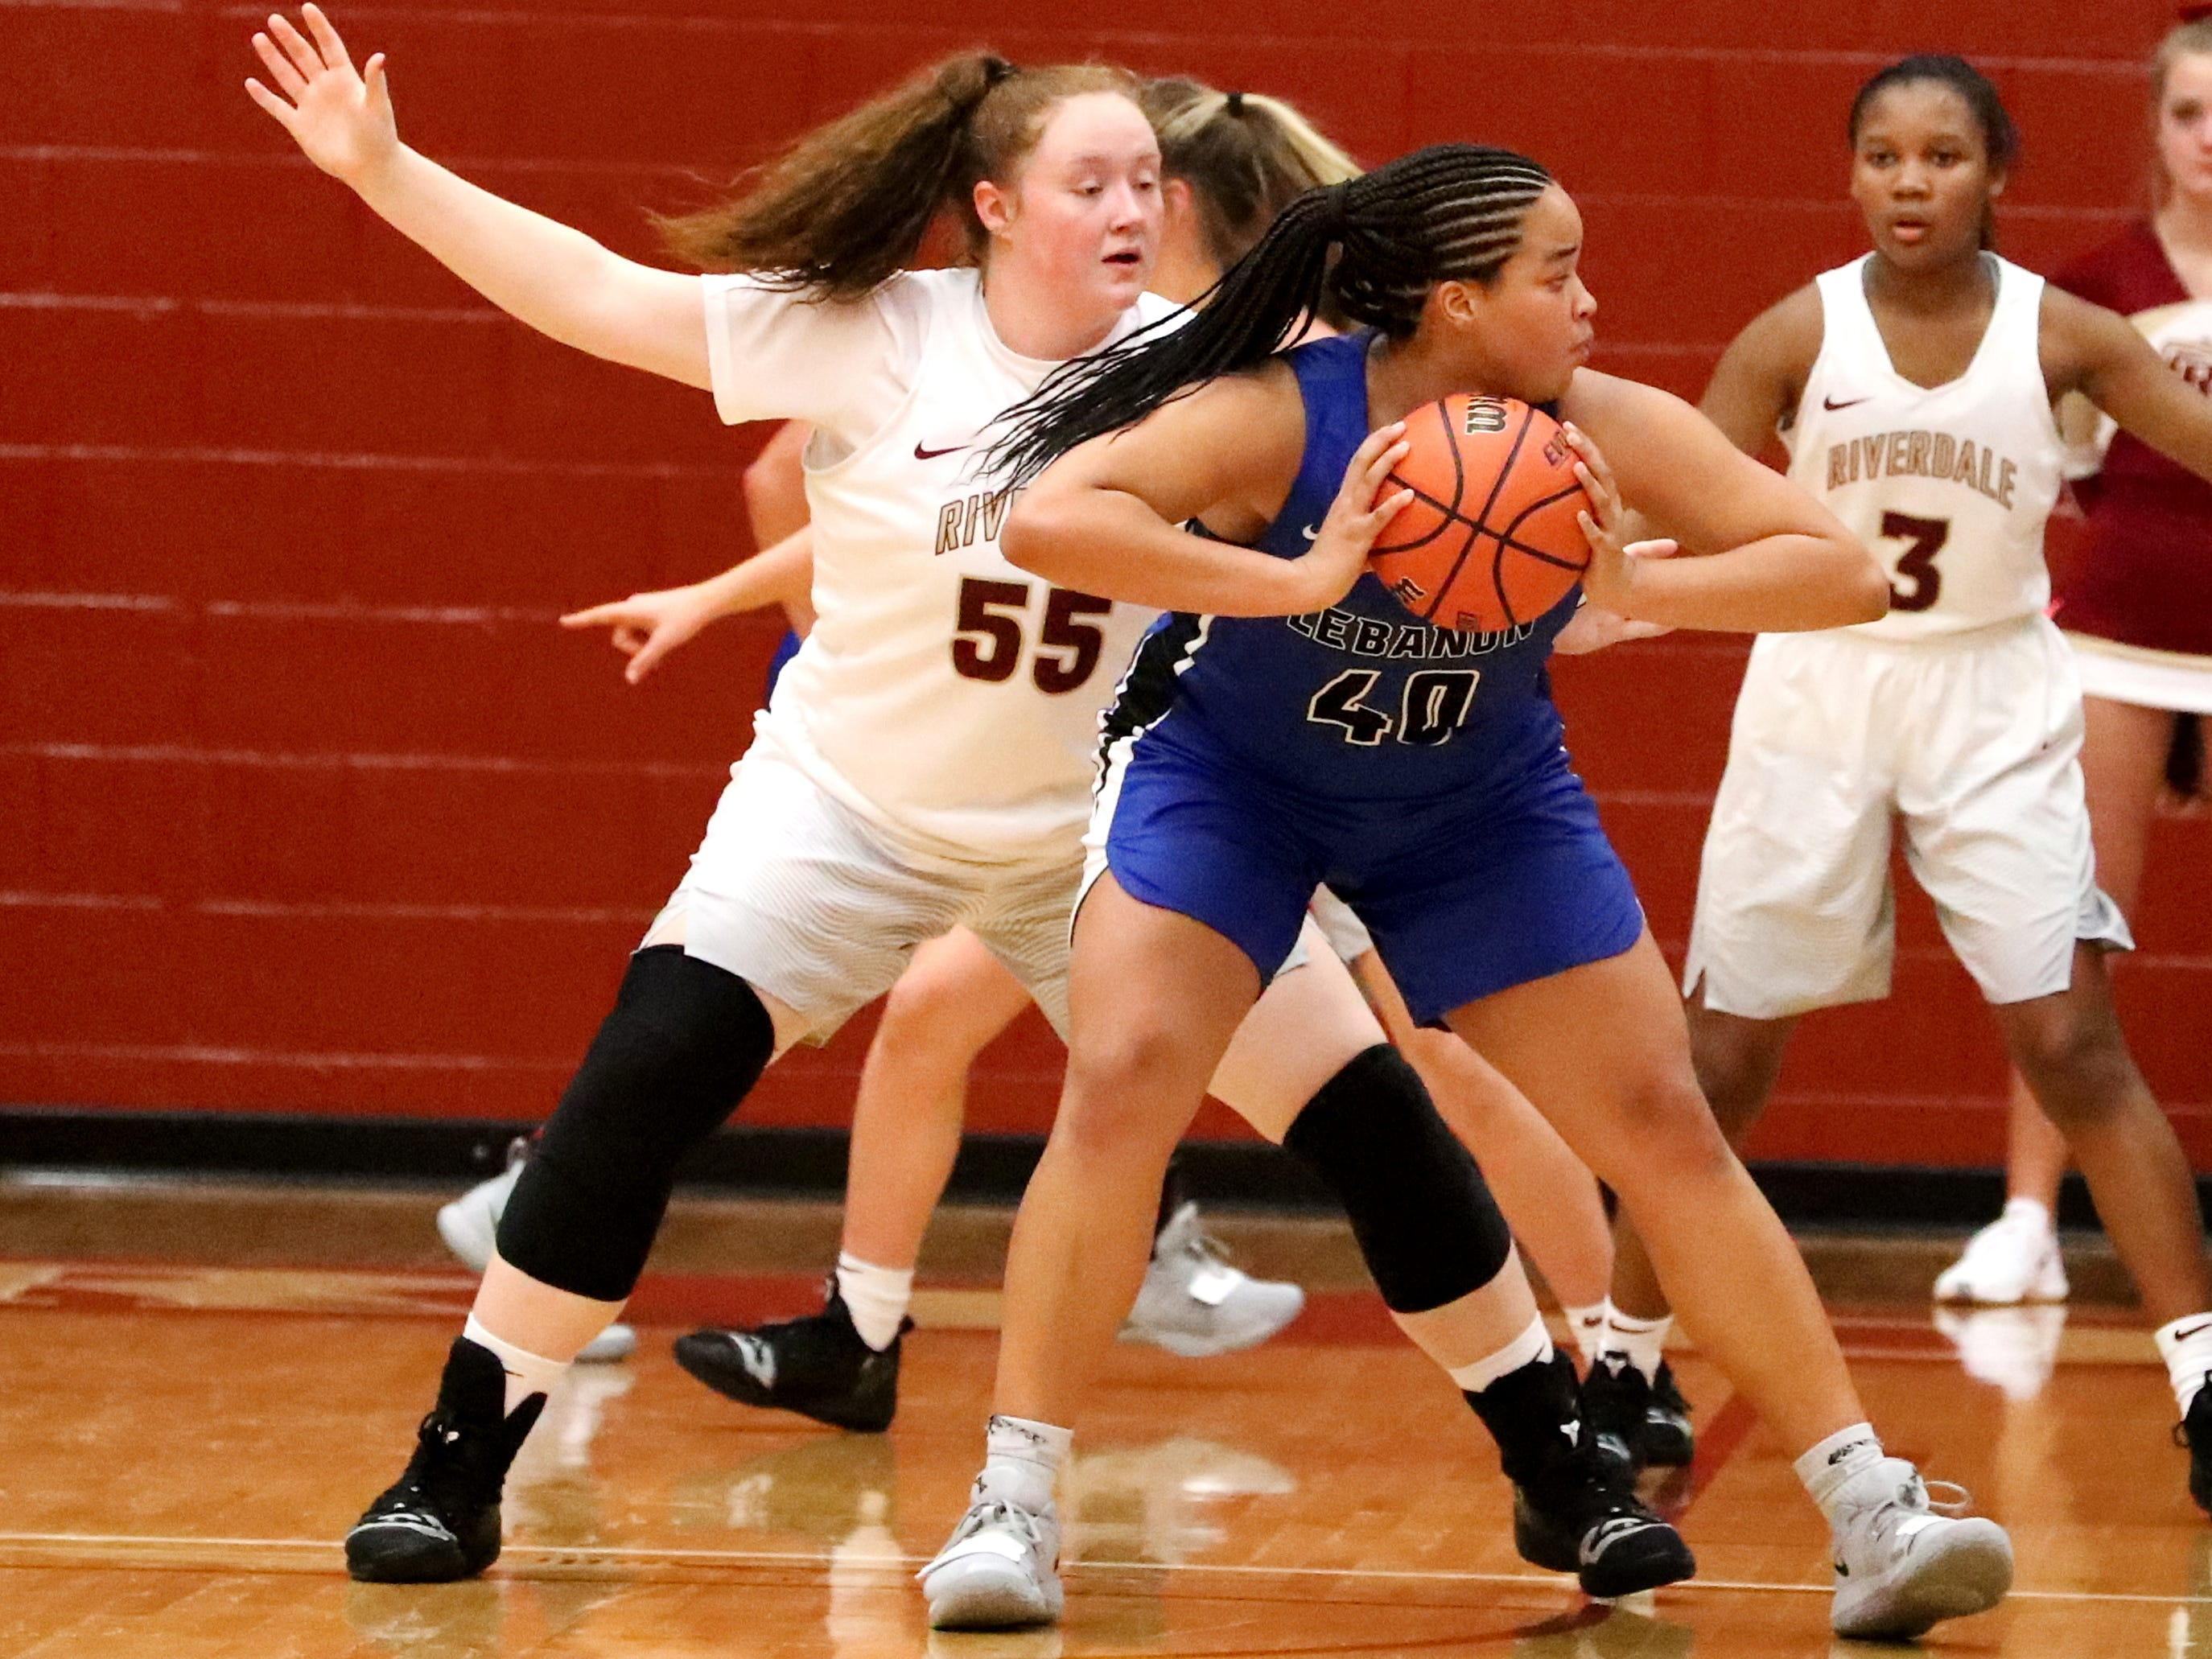 Lebanon's  Christaney Brookshire (40) looks to pass the ball as RiverdaleÕs Katelyn Worely (55) guards her during the game at Riverdale on Friday, Nov. 30, 2018.